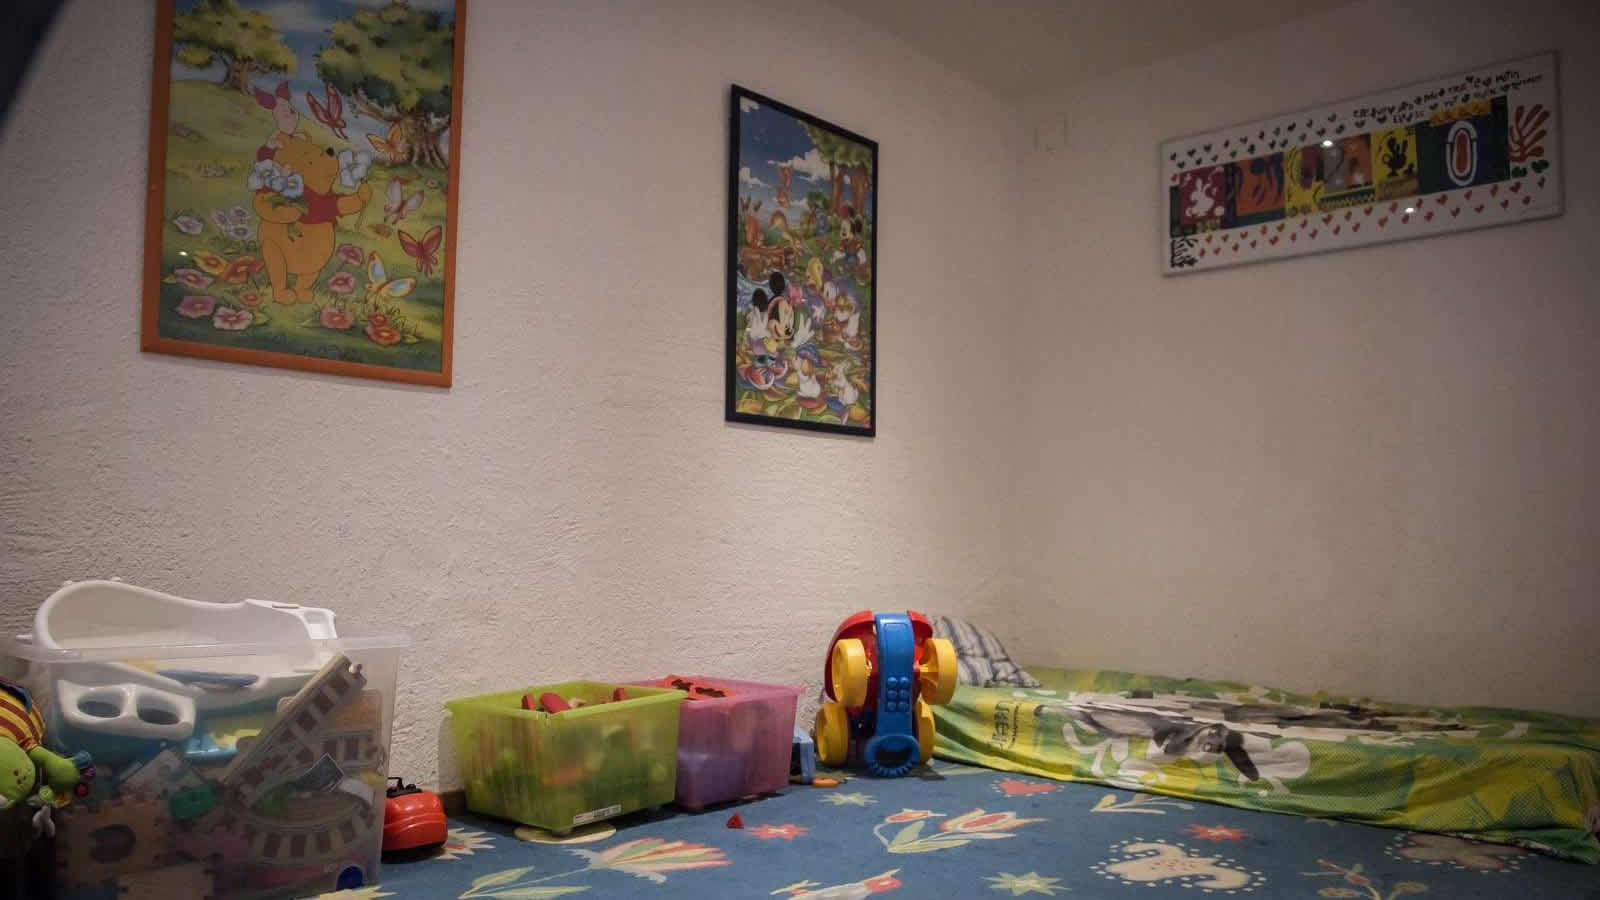 Activities for Children in the Playroom of the Carlos III Hotel in Alcanar - San Carlos de la Rapita - the Ebro Delta